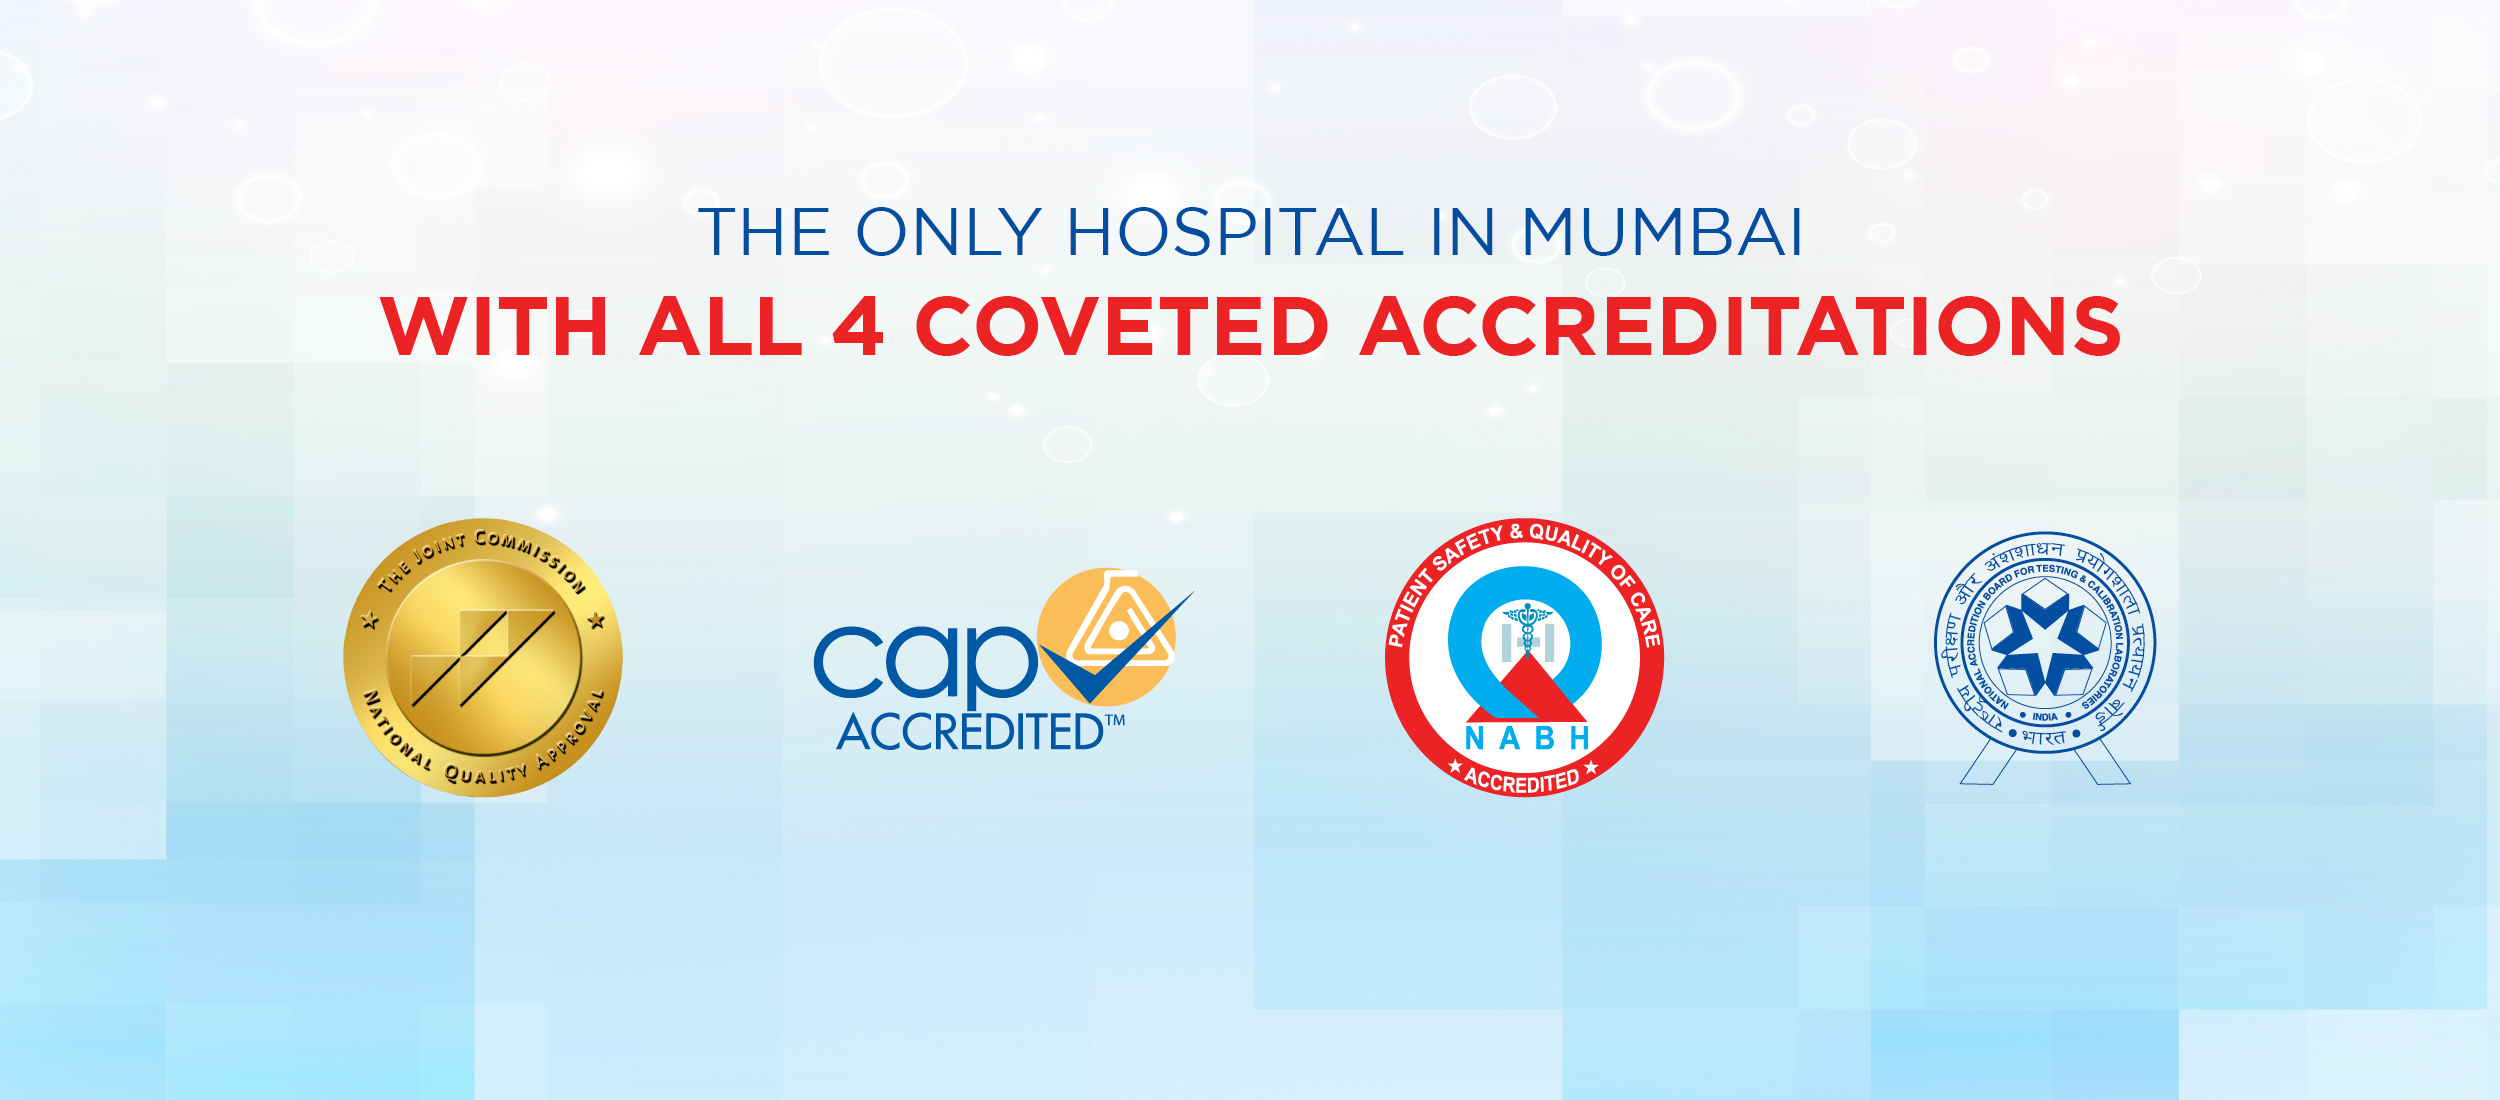 KDAH Is Only Hospital In Mumbai - With All 4 Coveted Accreditations